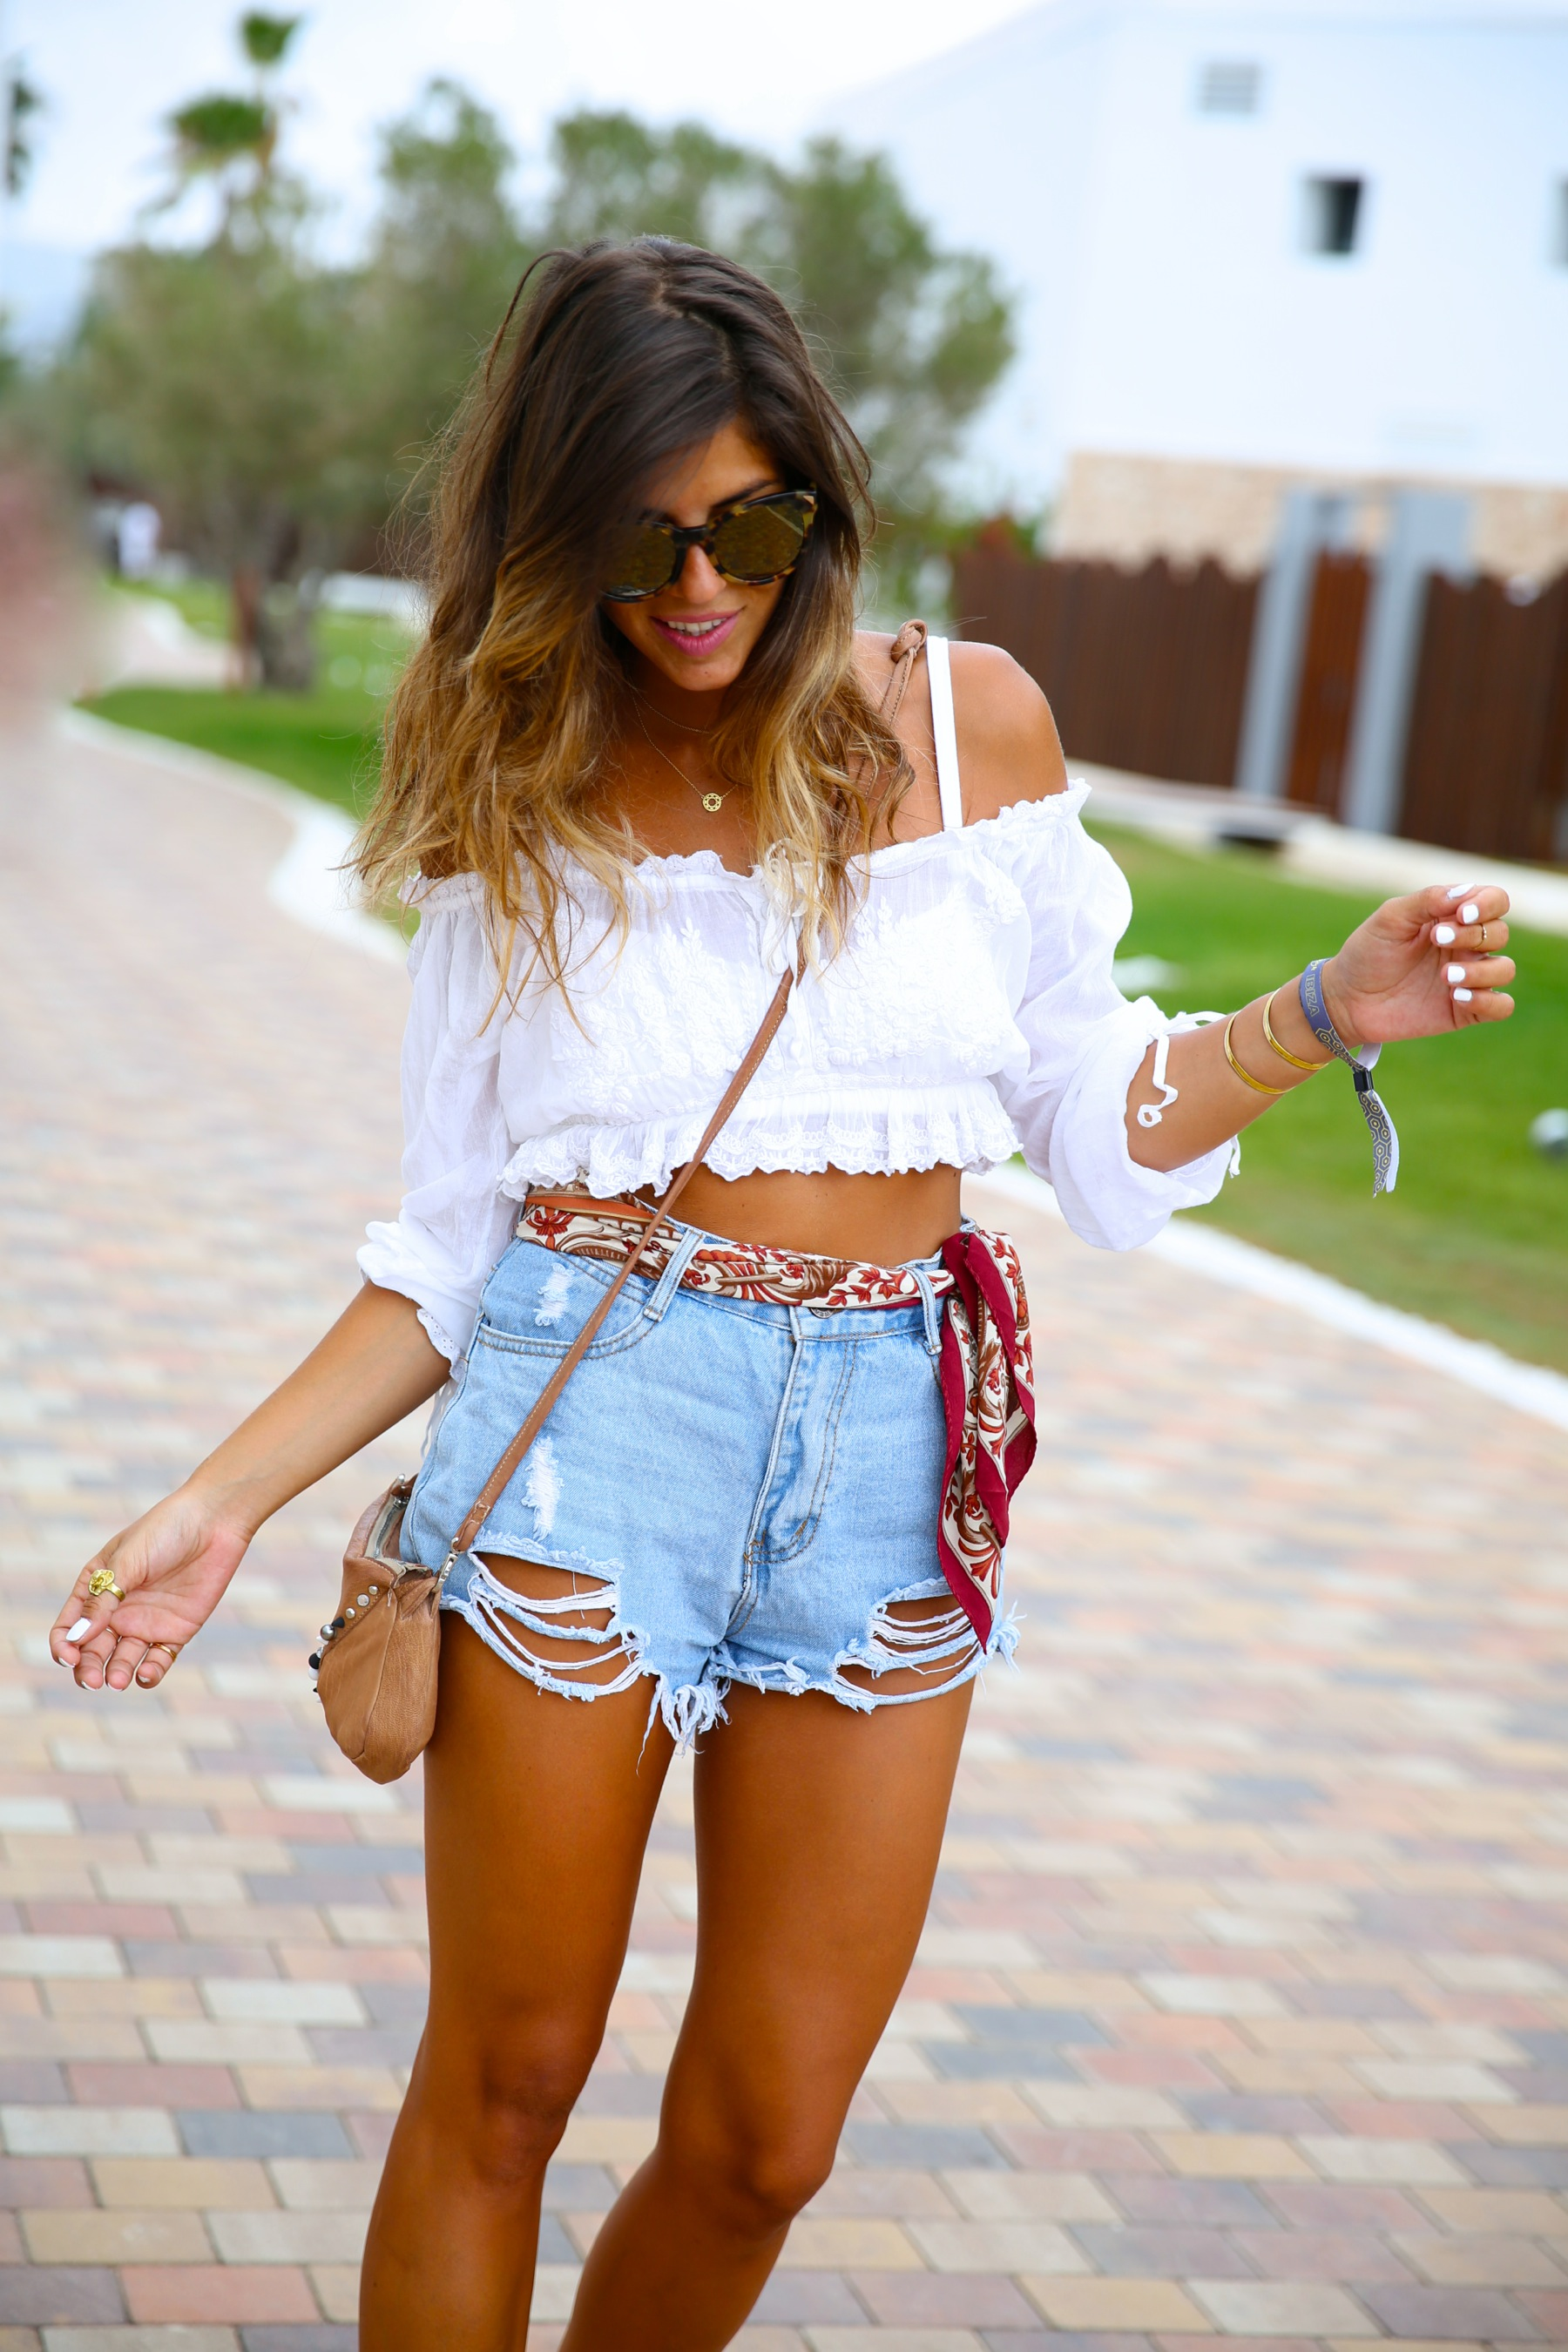 trendy_taste-look-outfit-street_style-ootd-blog-blogger-fashion_spain-moda_españa-hard_rock_hotel-ibiza-palladium-shorts_vaqueros-denim_shorts-boho-verano-summer-hippie-pañuelo-16